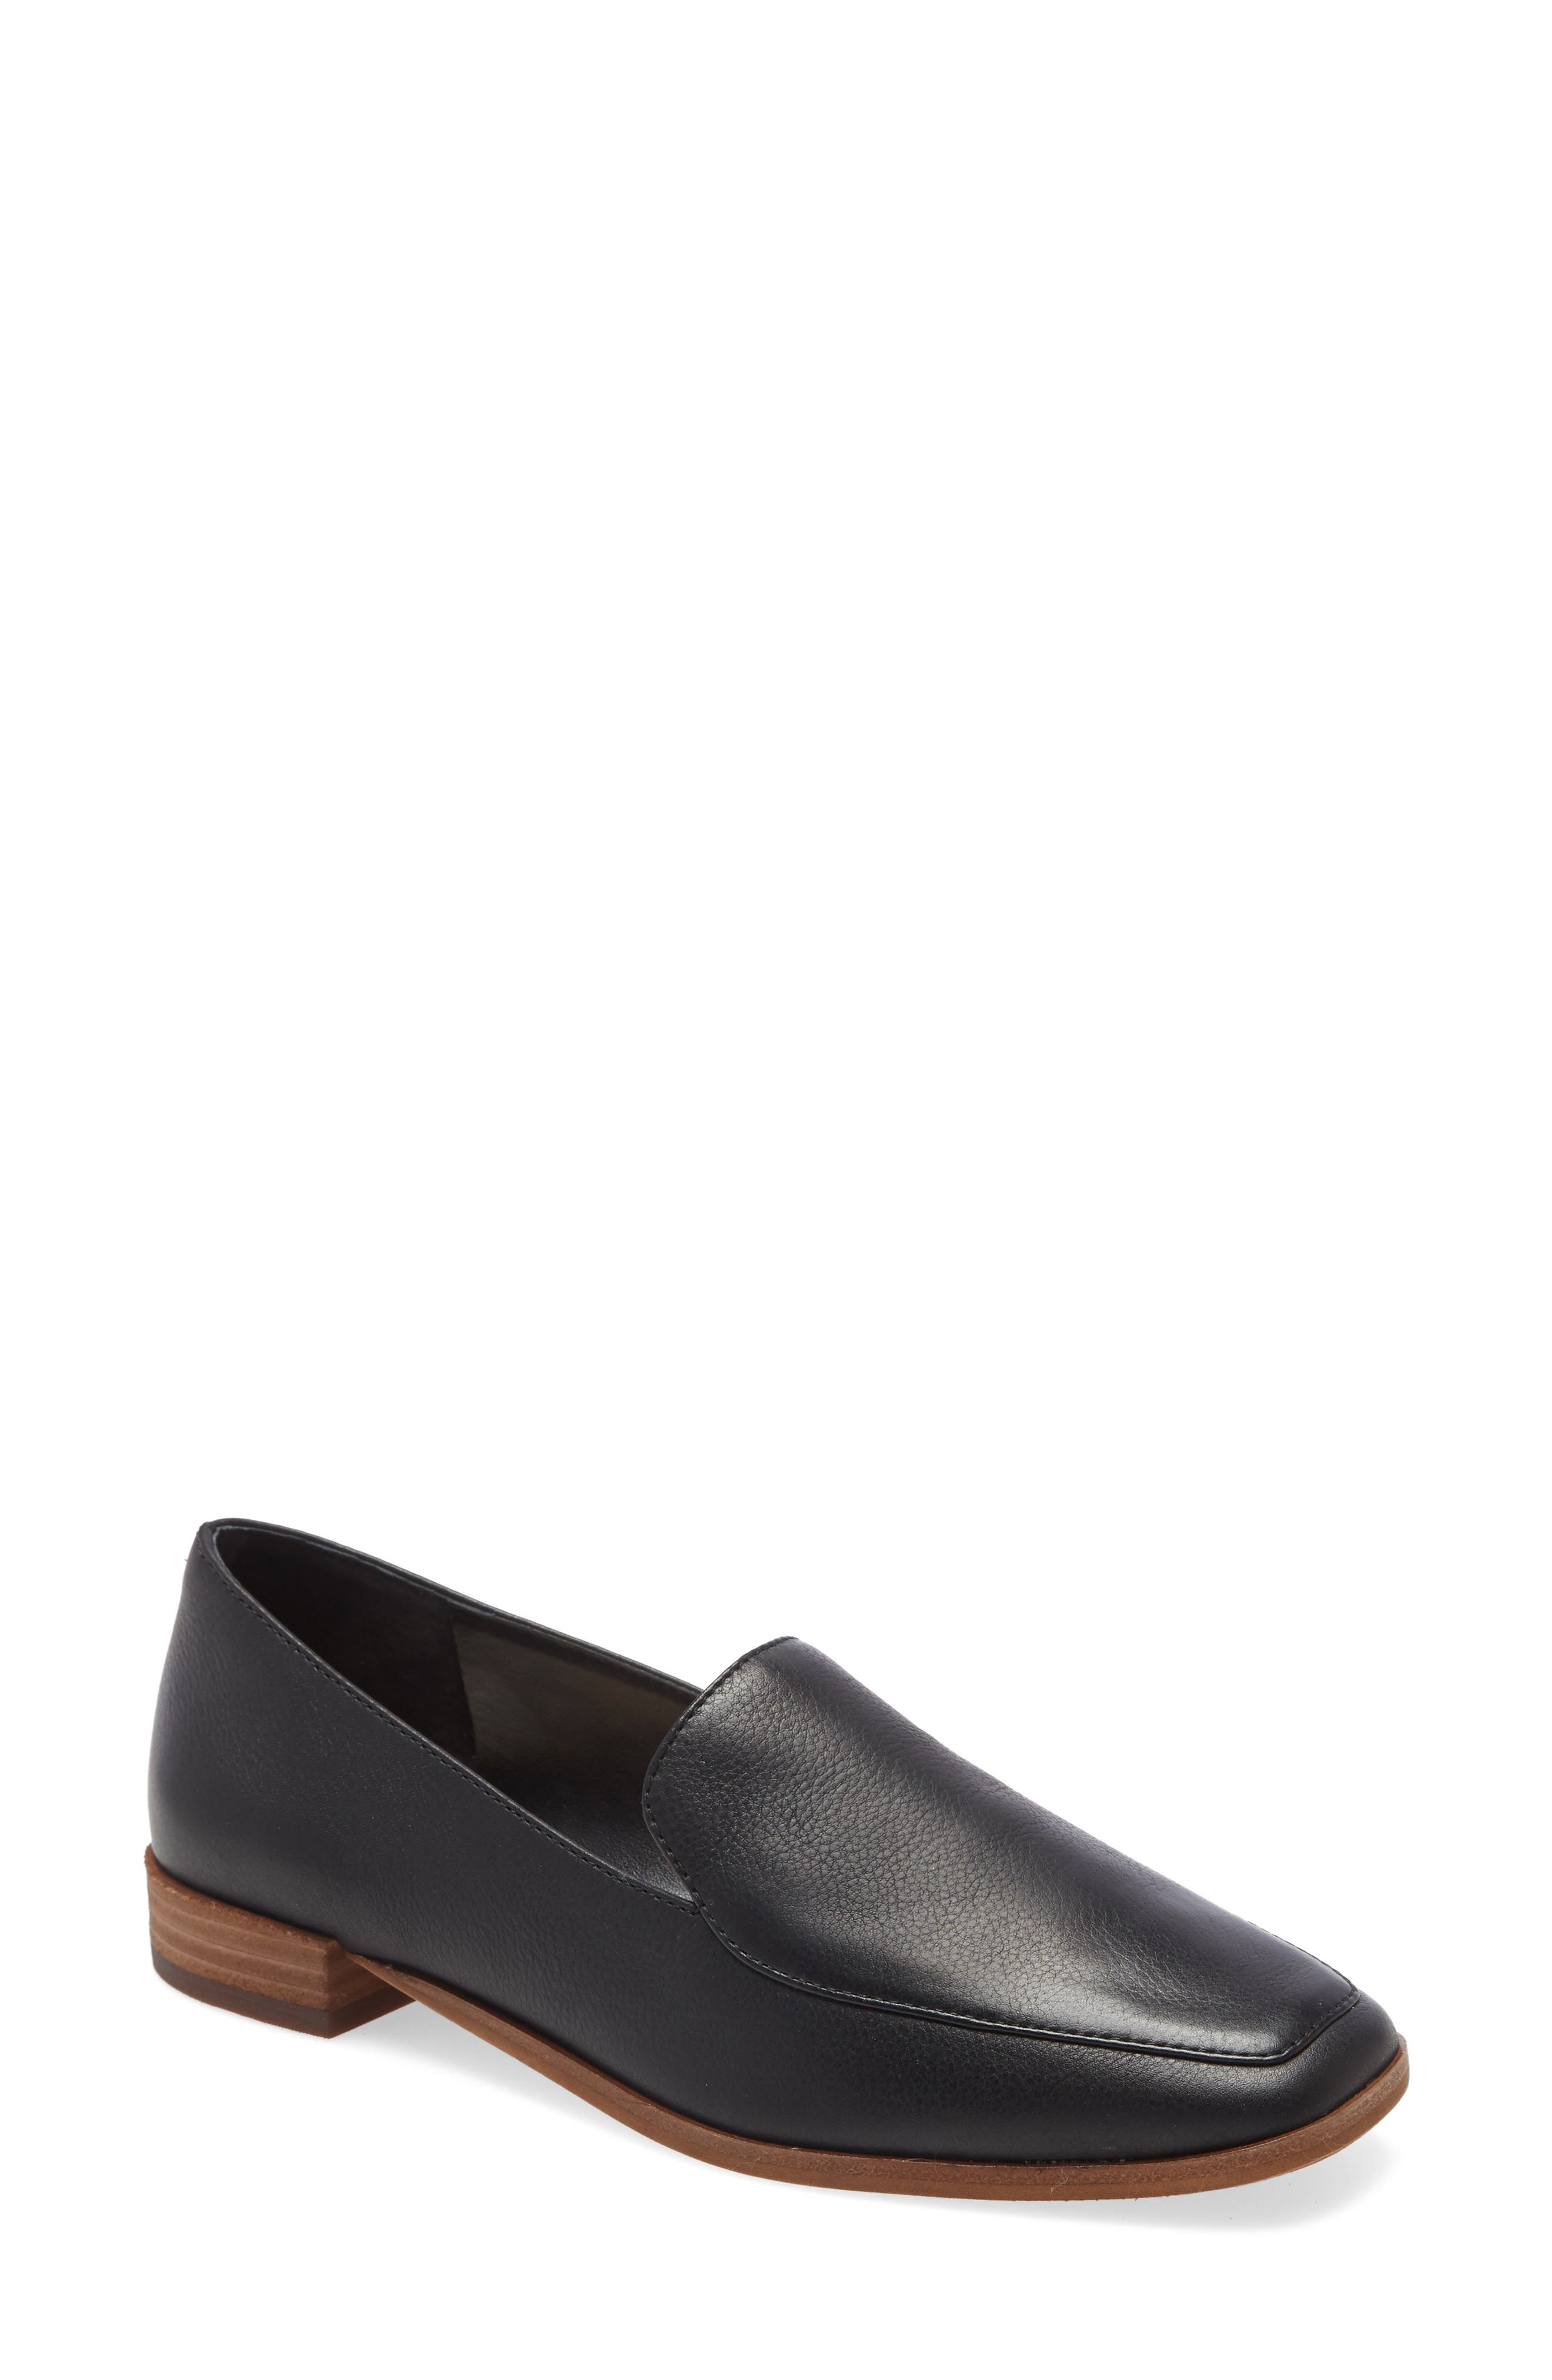 Image of Vince Camuto Brynna Loafer